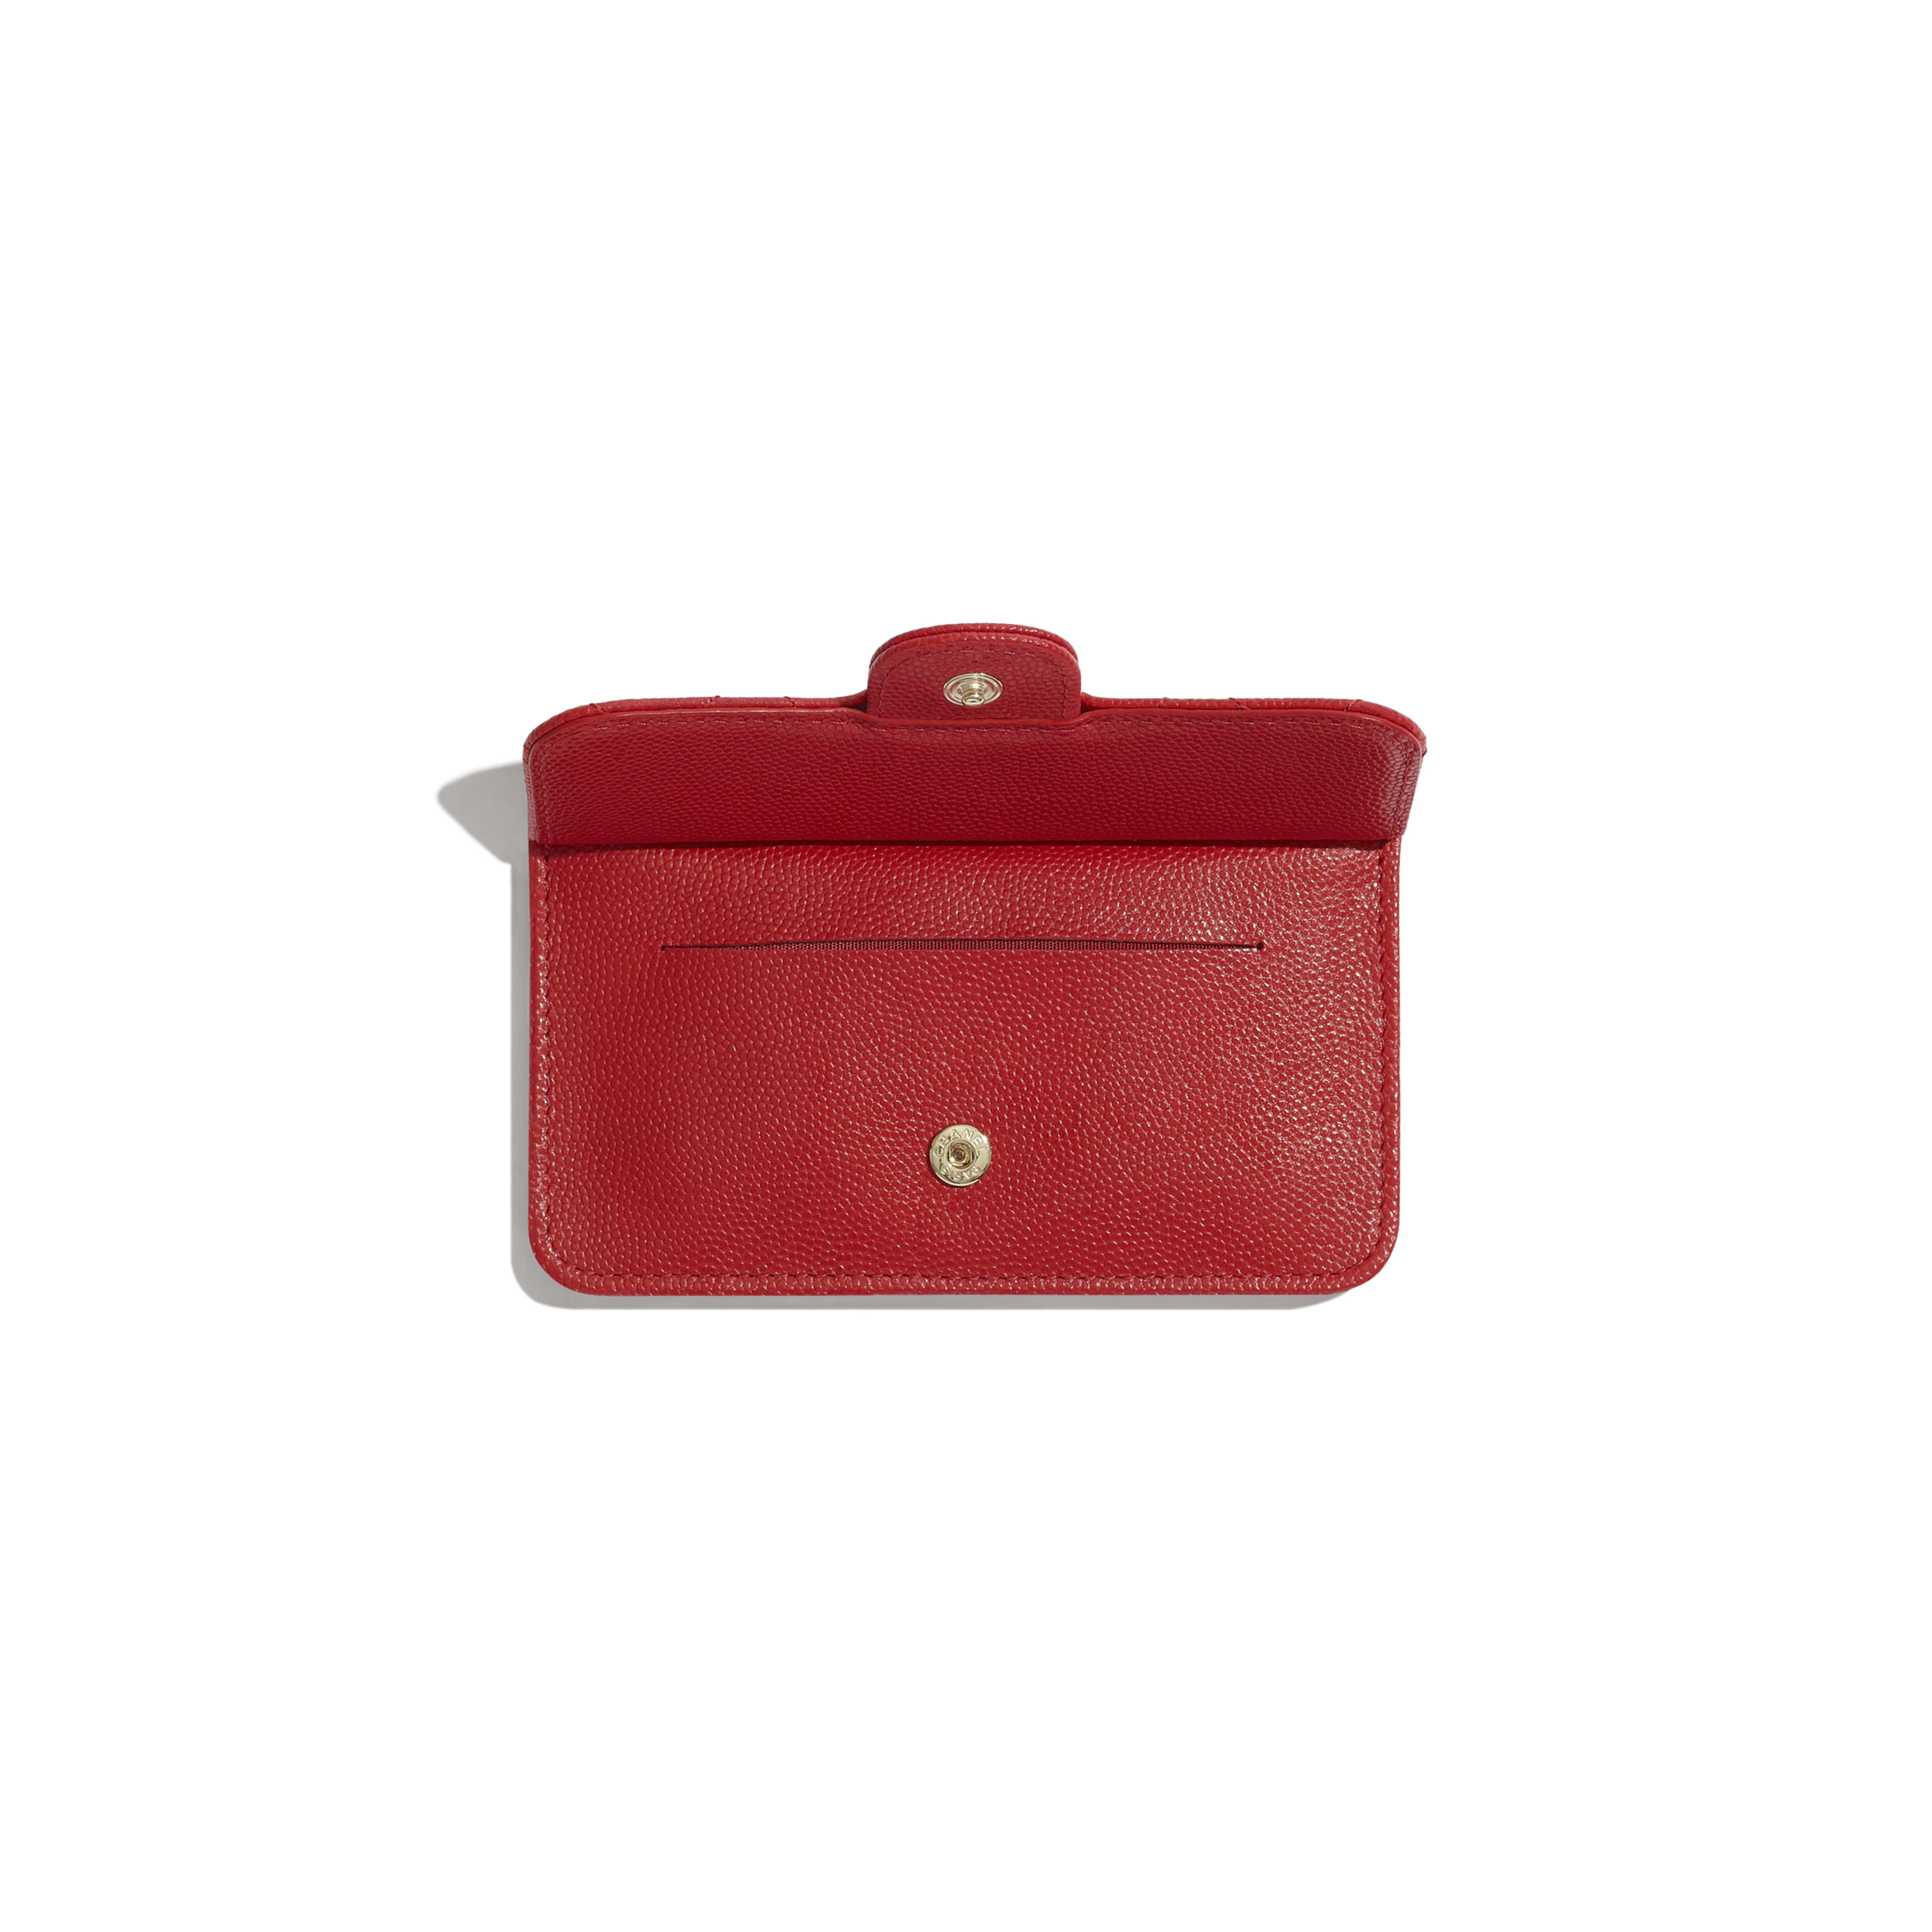 Classic Card Holder - Red - Grained Calfskin & Gold-Tone Metal - Other view - see full sized version